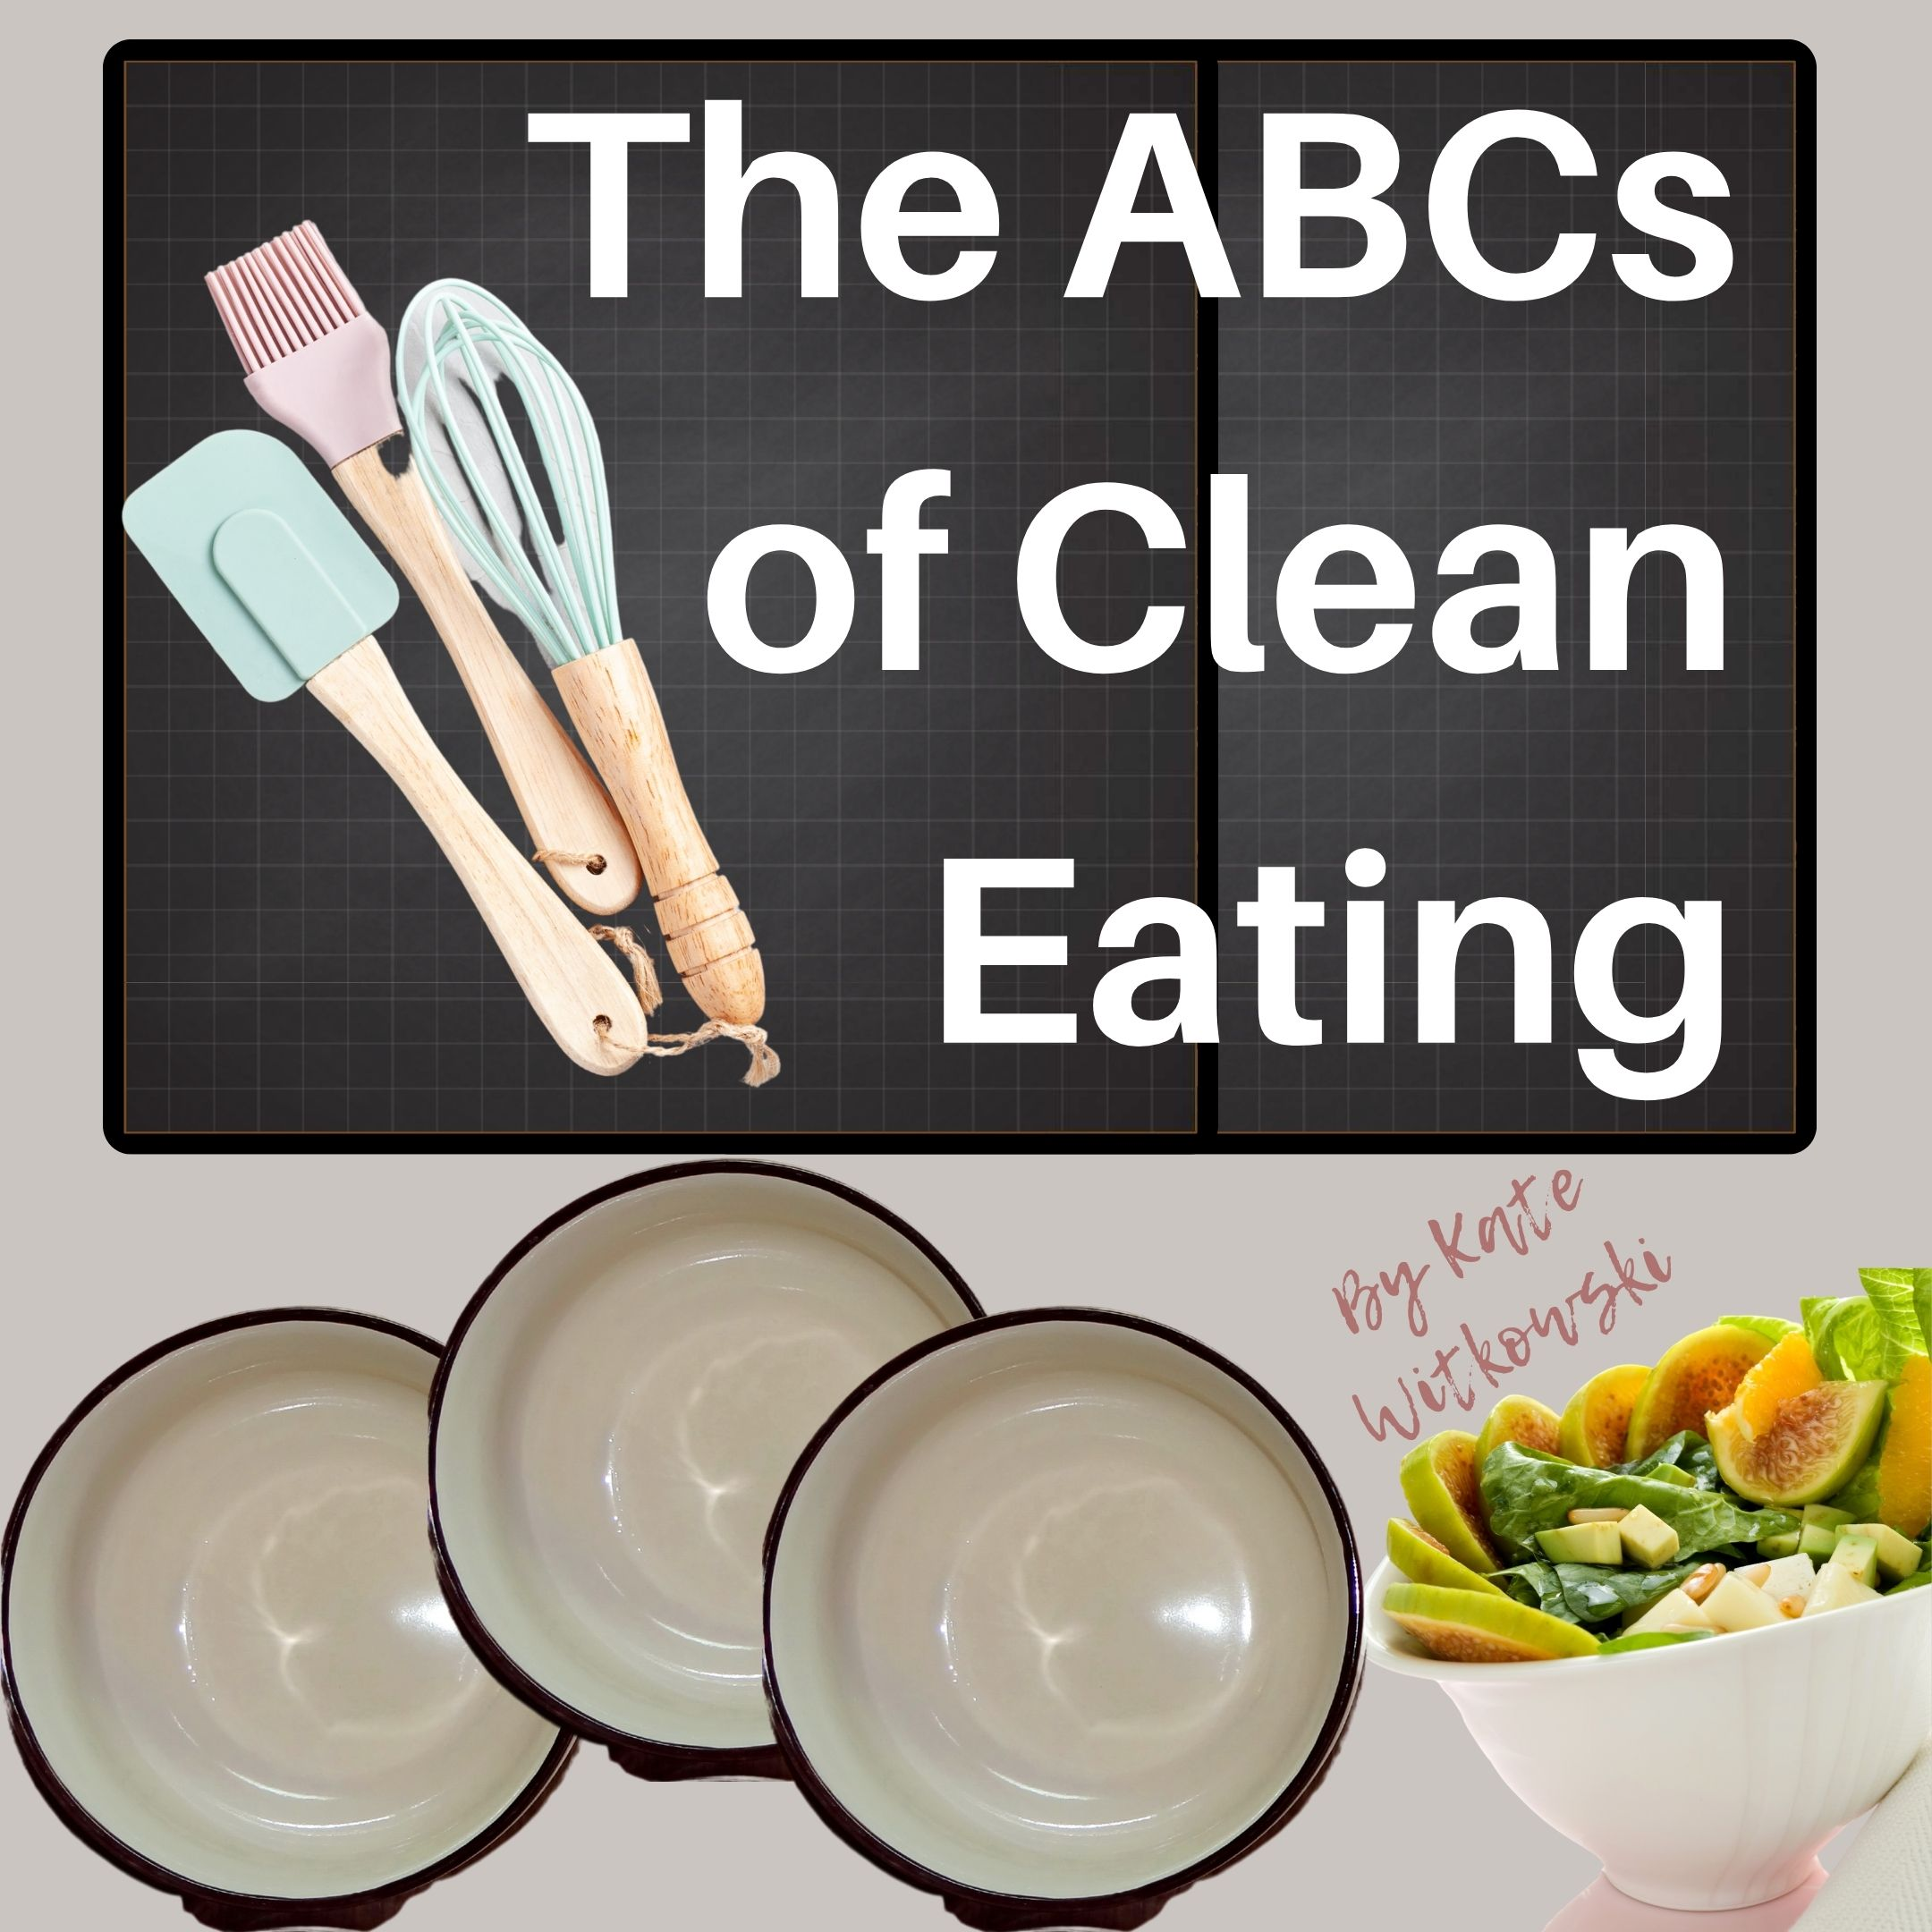 ABCs of Clean Eating